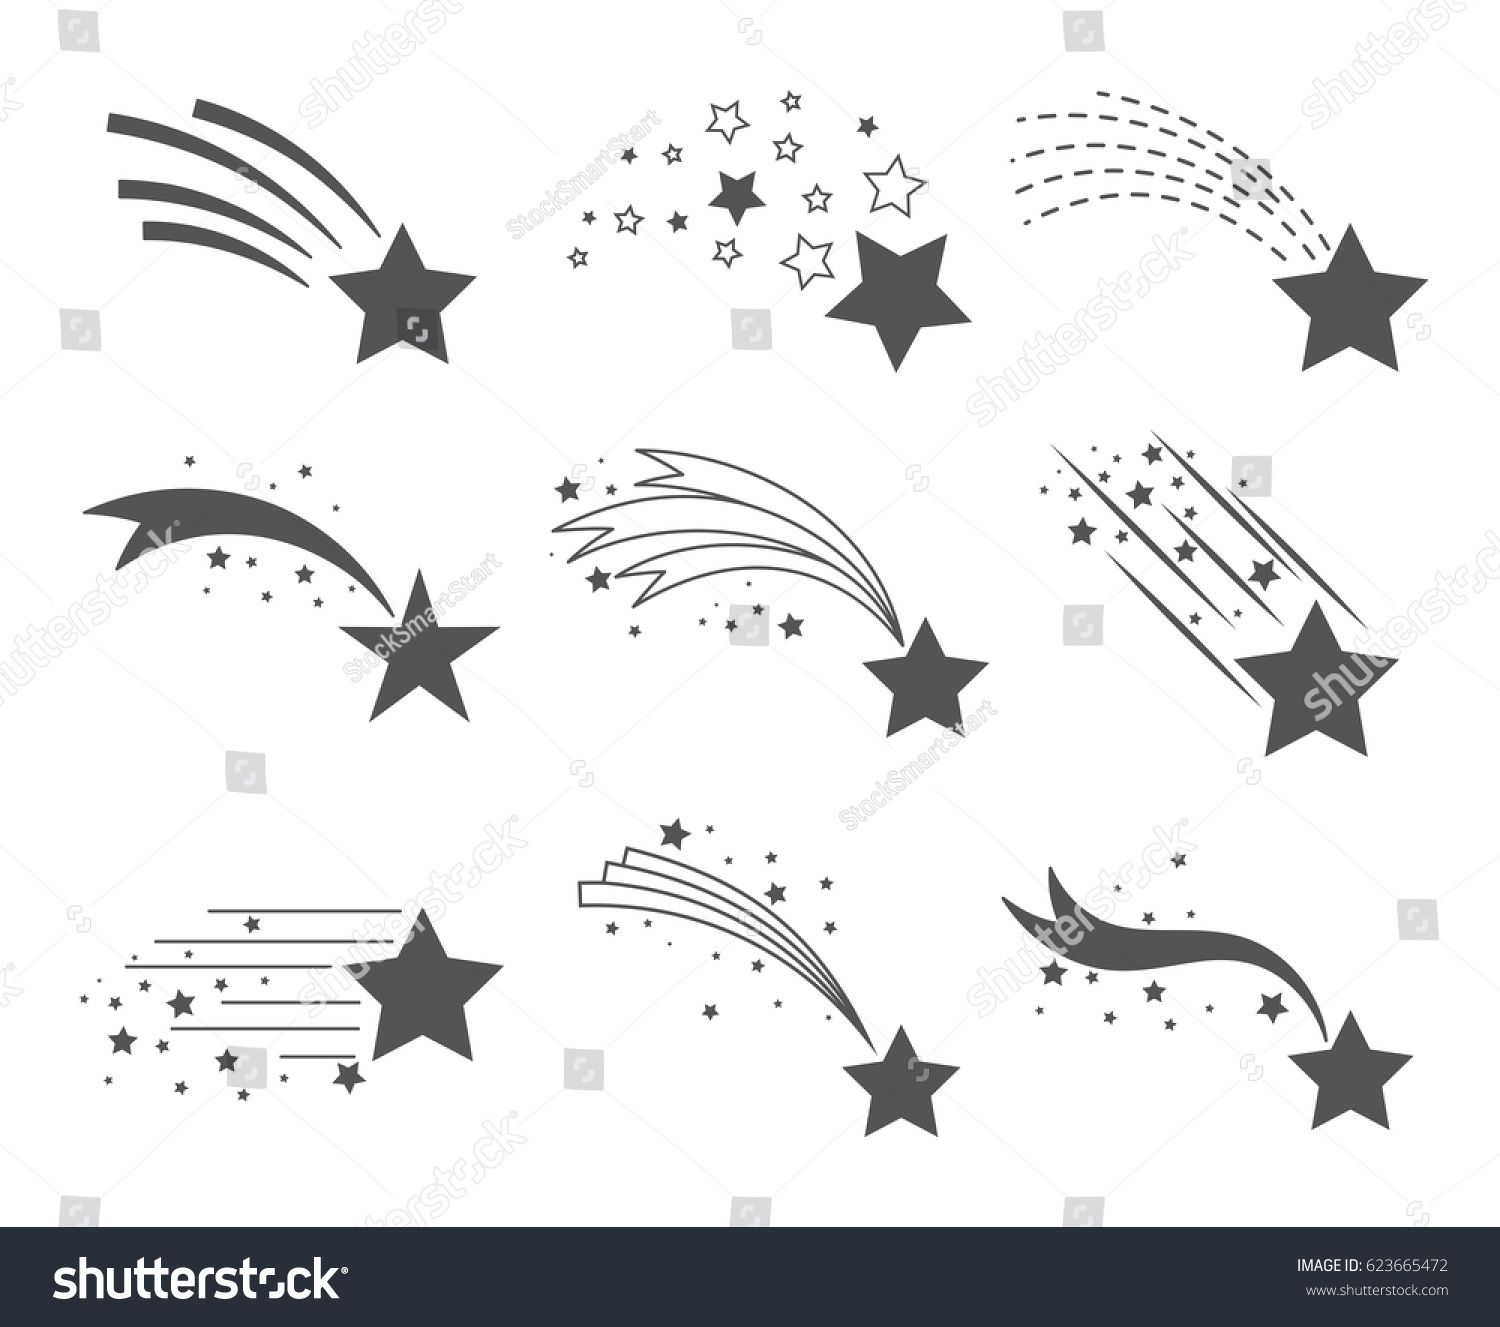 Shooting Stars Icons Comet Tail Or Star Trail Vector Set Isolated On White Background Stardust Shooting Star Tattoo Shooting Star Drawing Star Tattoo Designs